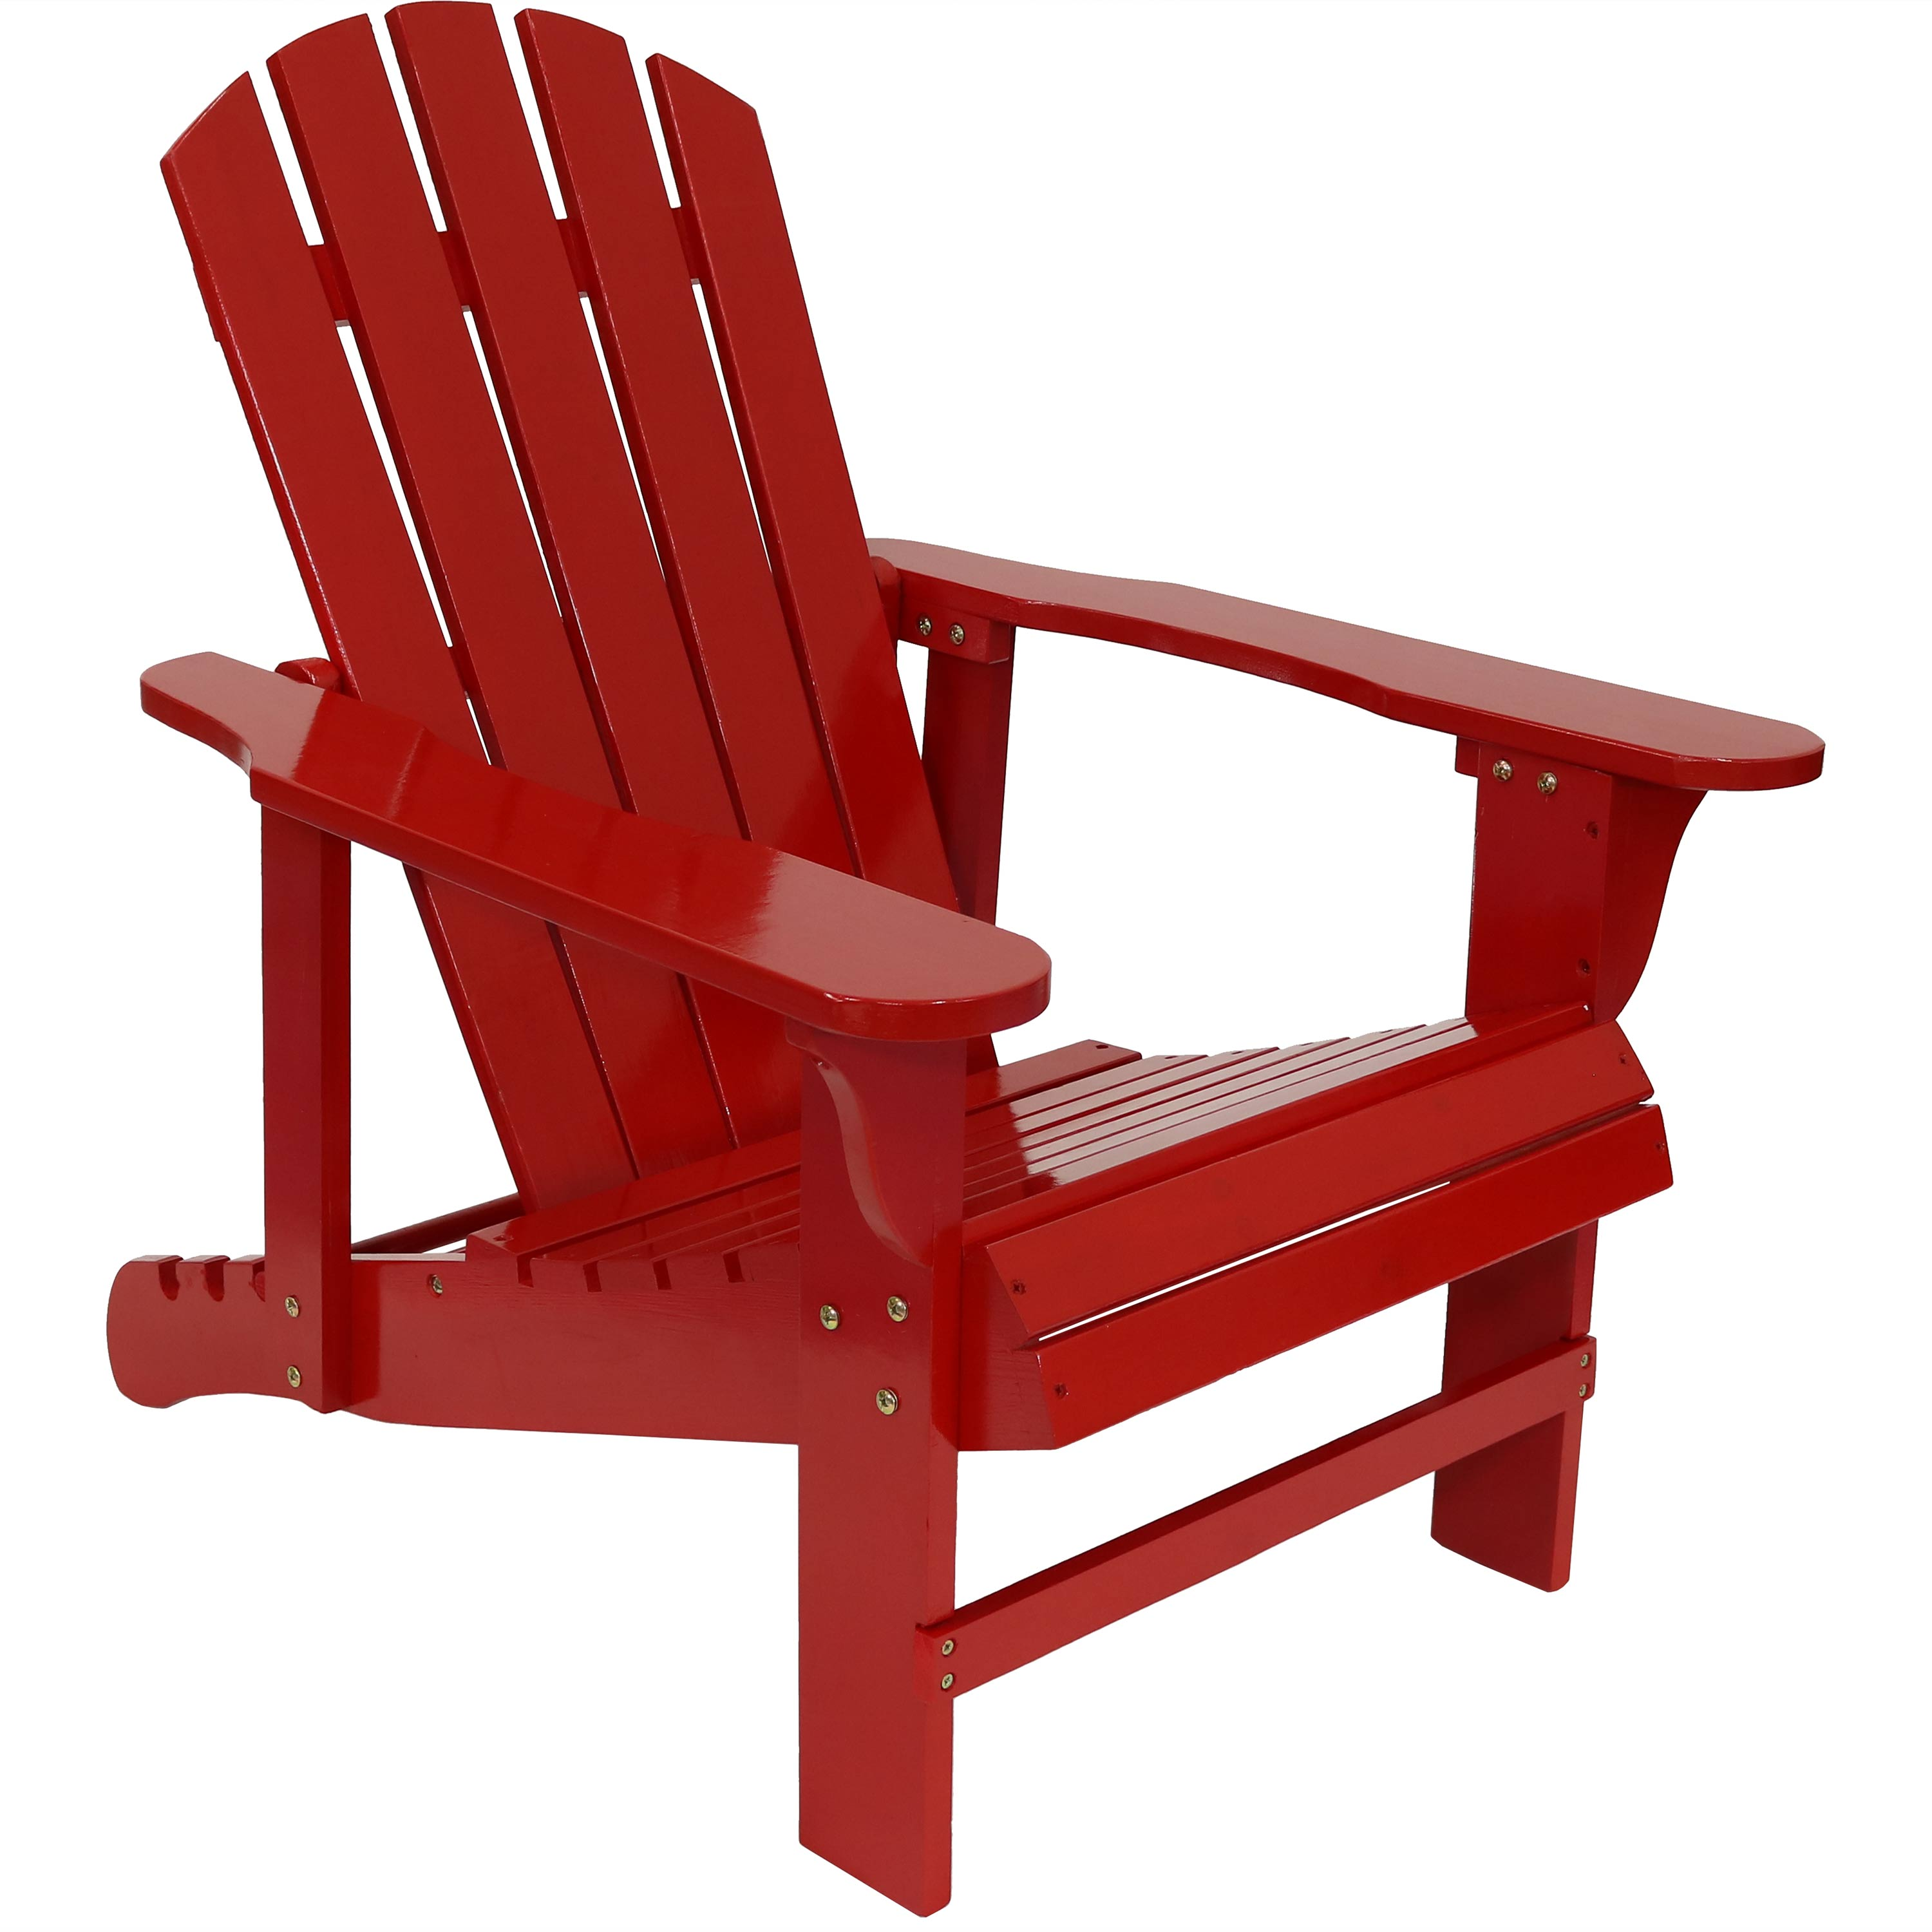 Wooden Adirondack Chair Backrest Red Photo